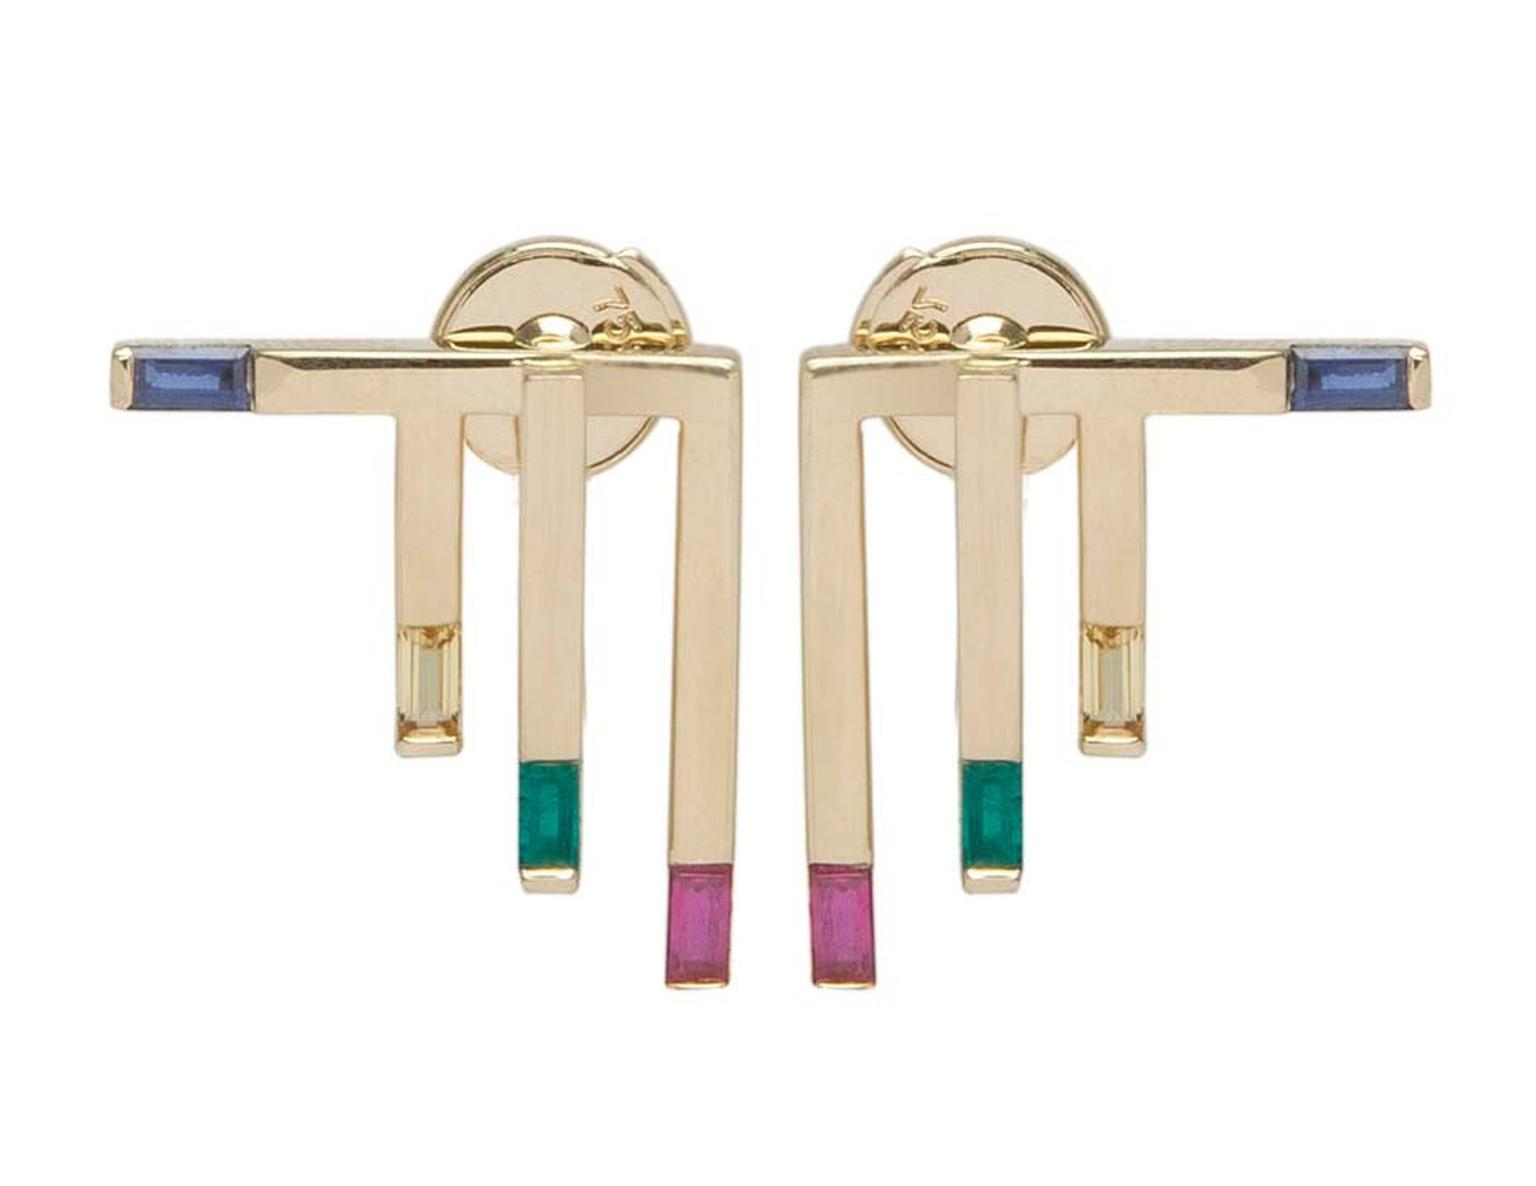 Ruifier Solstice Stud earrings in yellow gold with emeralds and blue and yellow sapphires (£1,375).